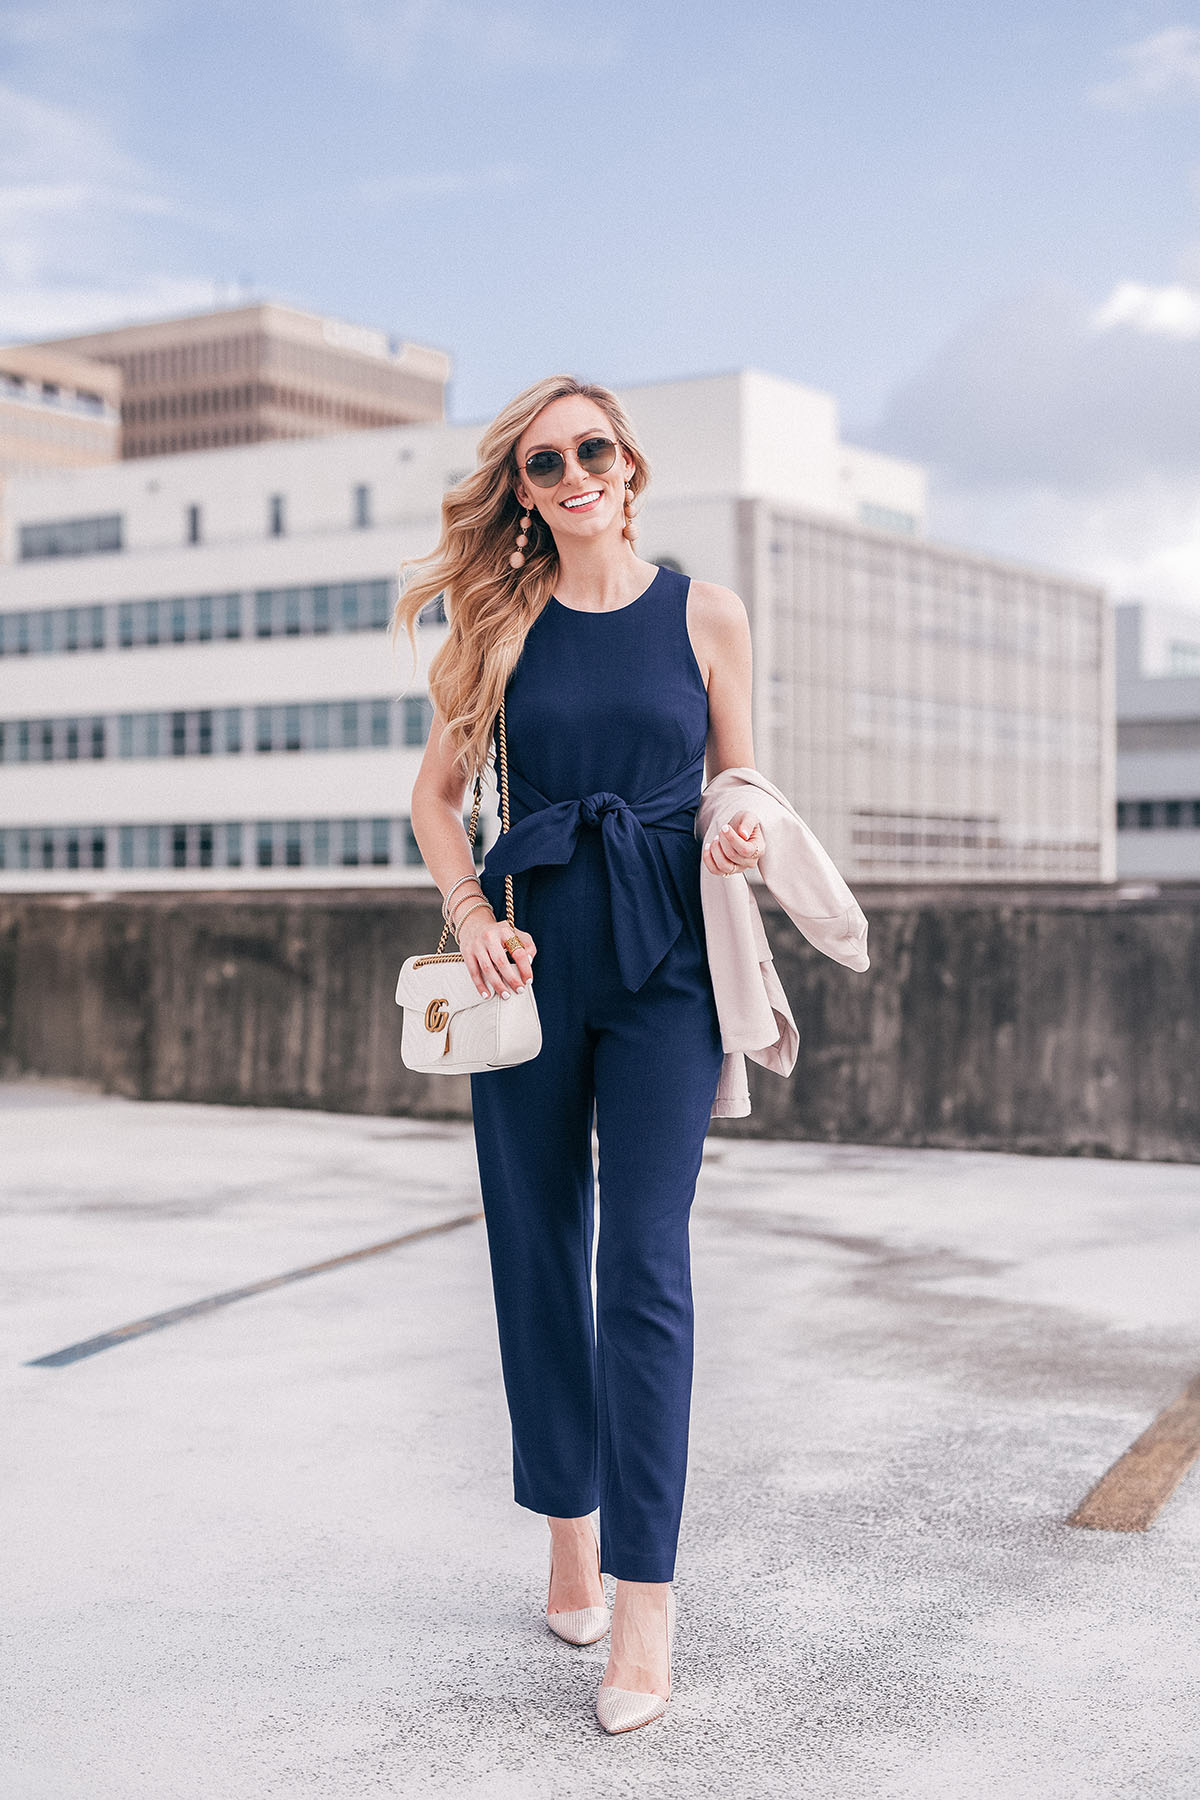 Classic Navy Pantsuit | Why Every Girl Needs A Classic Pantsuit In Her Closet